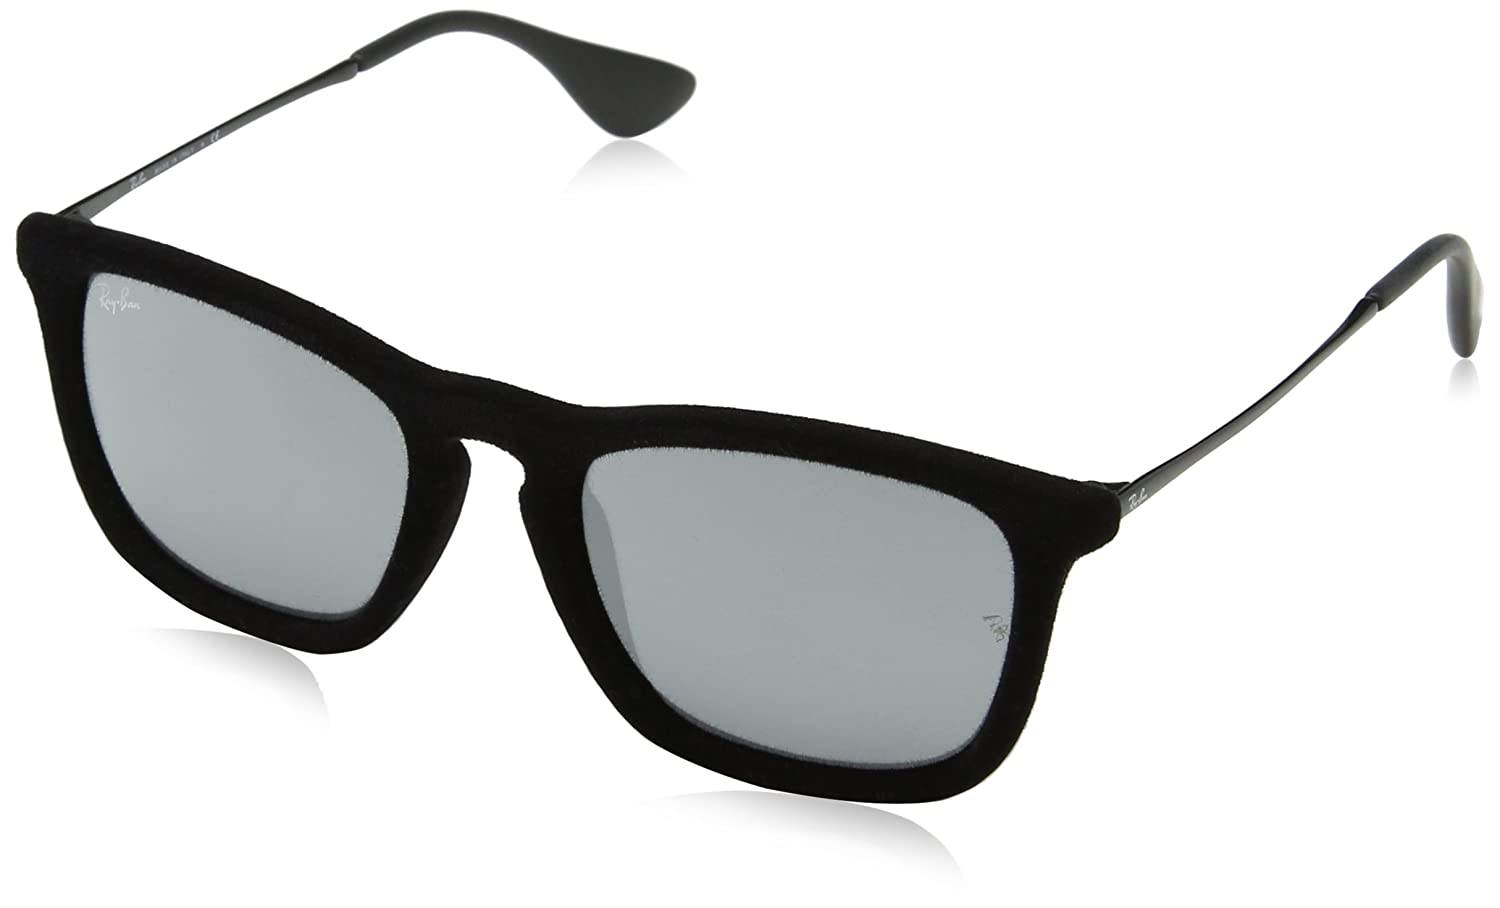 864c68329e0f Clothing, Shoes & Jewelry>Men>Contemporary & Designer>Accessories>Sunglasses  & Eyewear Accessories> Sunglasses